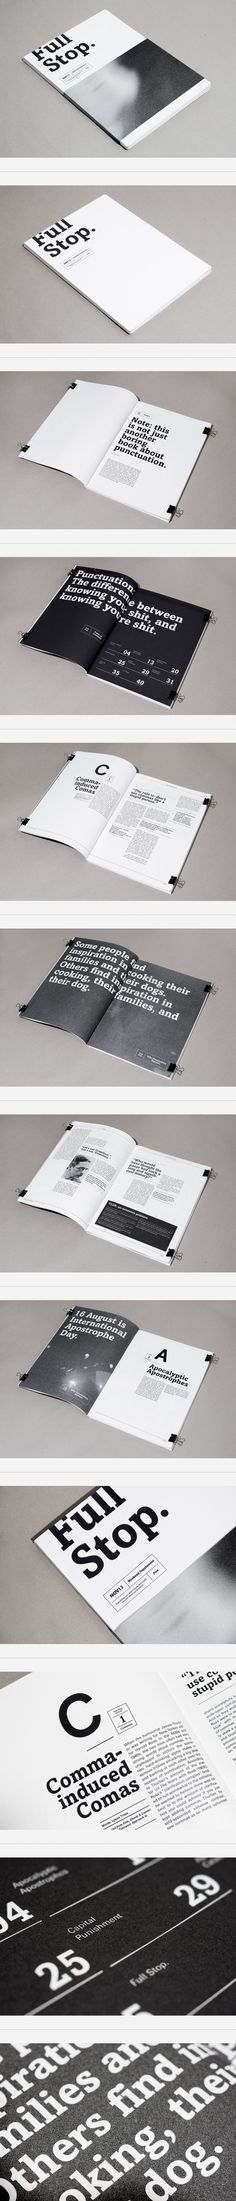 Full Stop.: Editorial magazine, with a focus on blending bold typography with subtle texture.